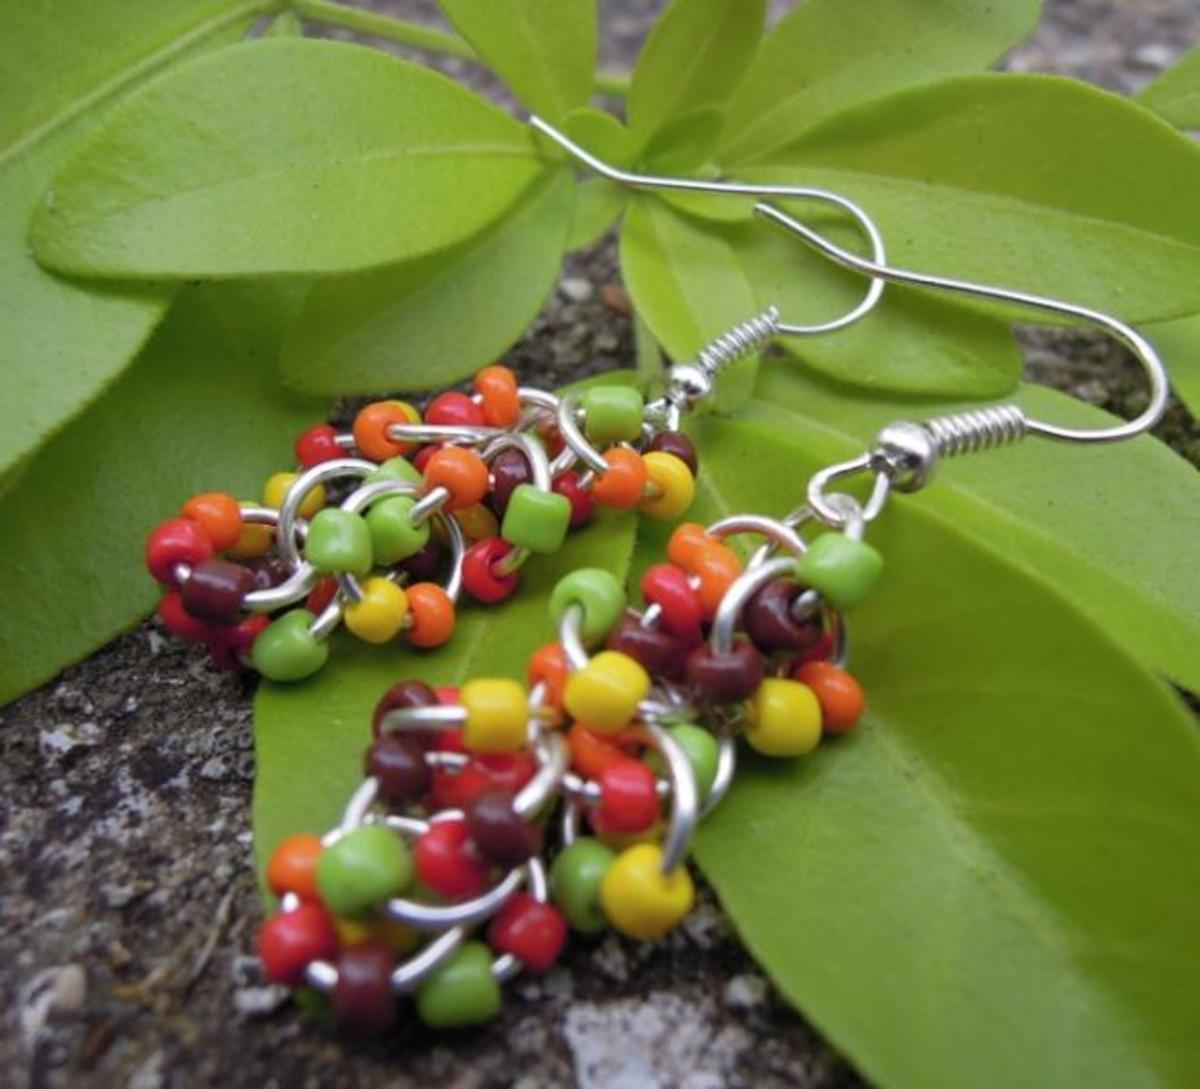 When carefully planned, even just a few simple materials can produce stunning jewellery designs. These earrings have been created using only silver jump rings and seed beads.